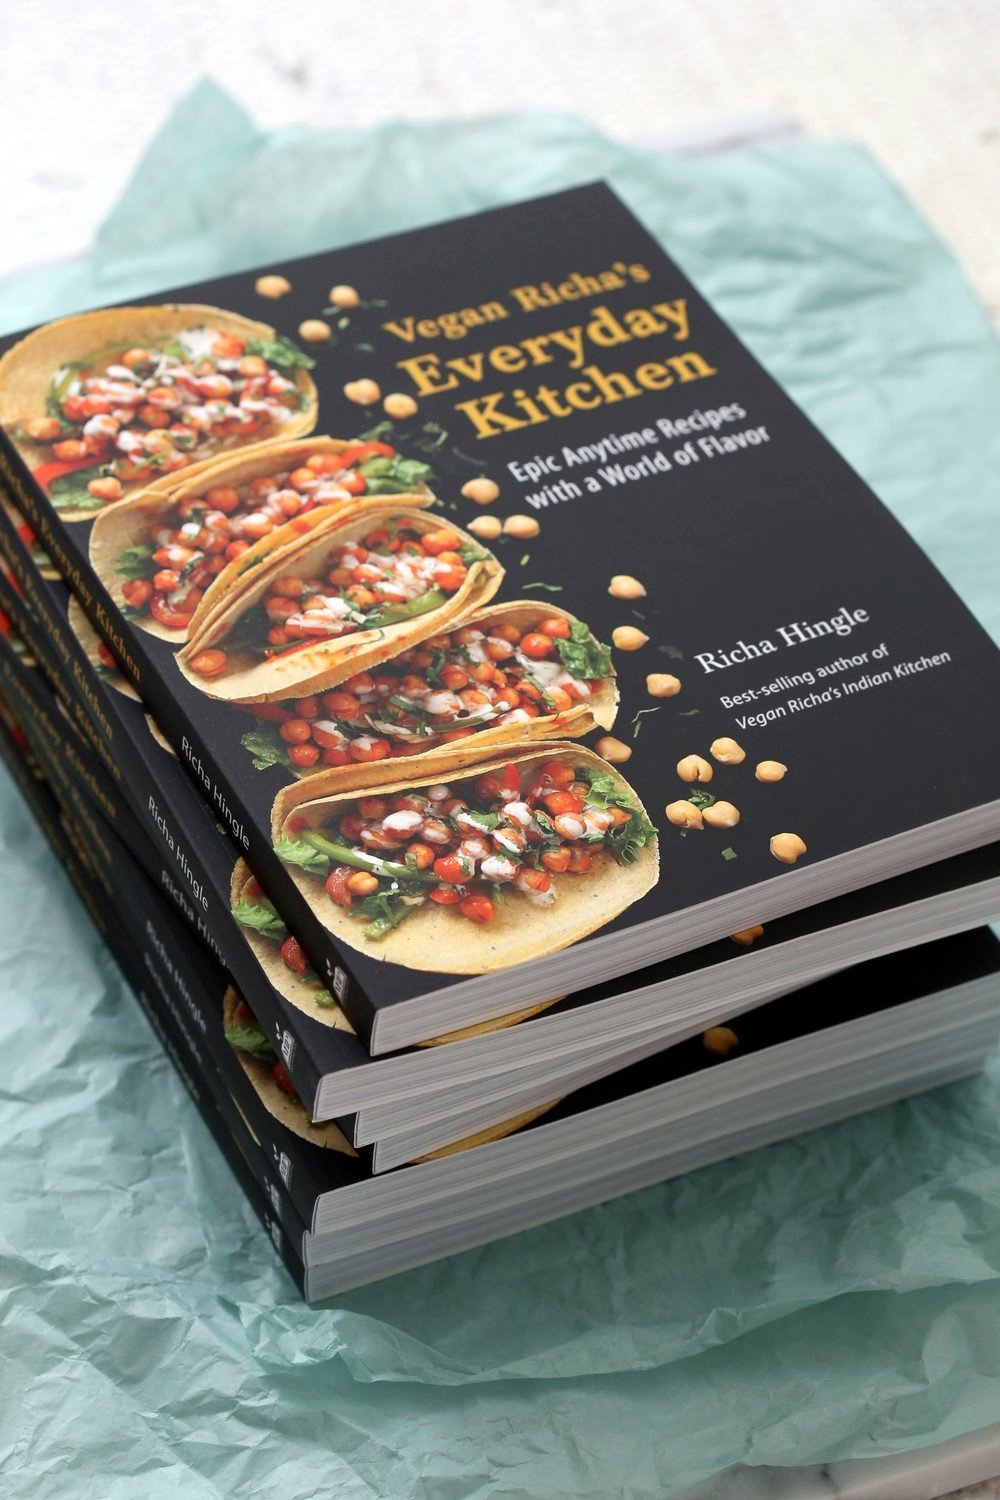 Vegan Richa's Everyday Kitchen! Available to Pre-order Everywhere where books are sold. Get Your Pre-order Bonus Today!